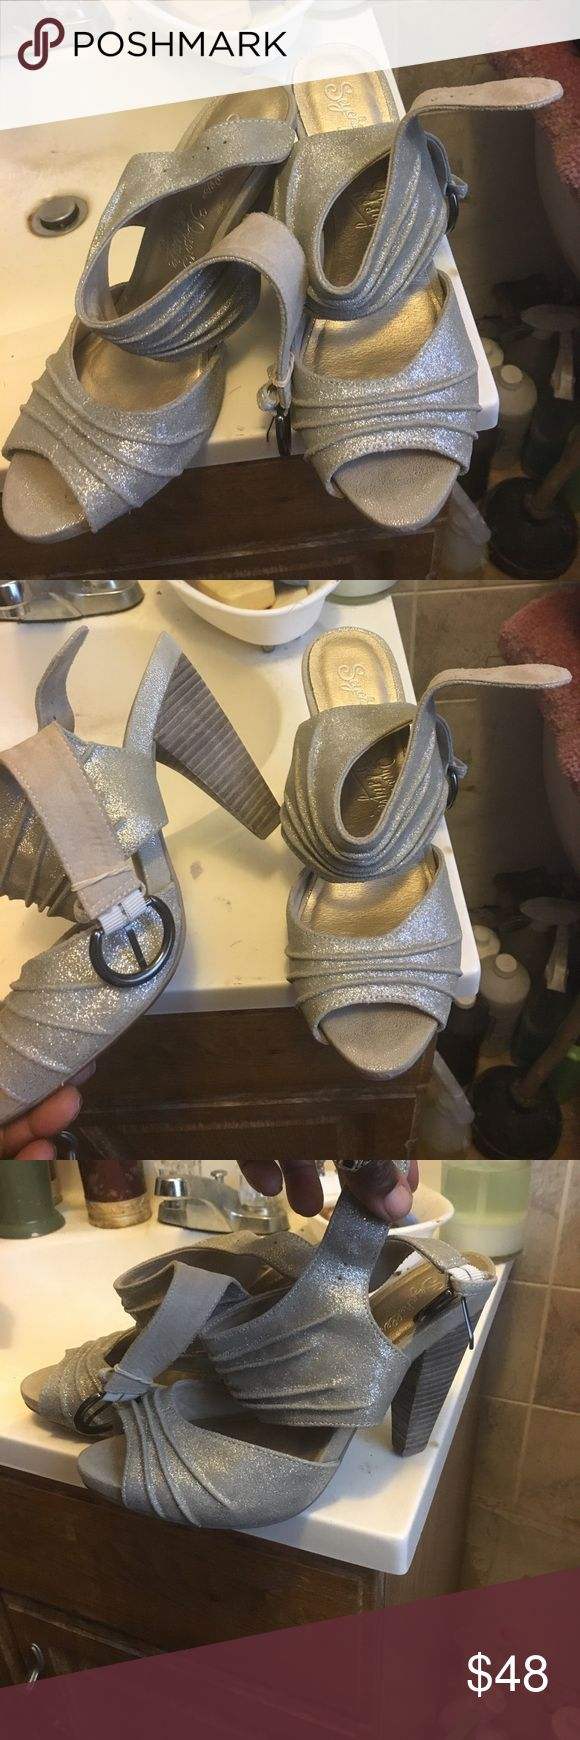 Seychelles shoes They are pre owned in great condition. A metallic taupe mixed with silver !! Seychelles Shoes Heels